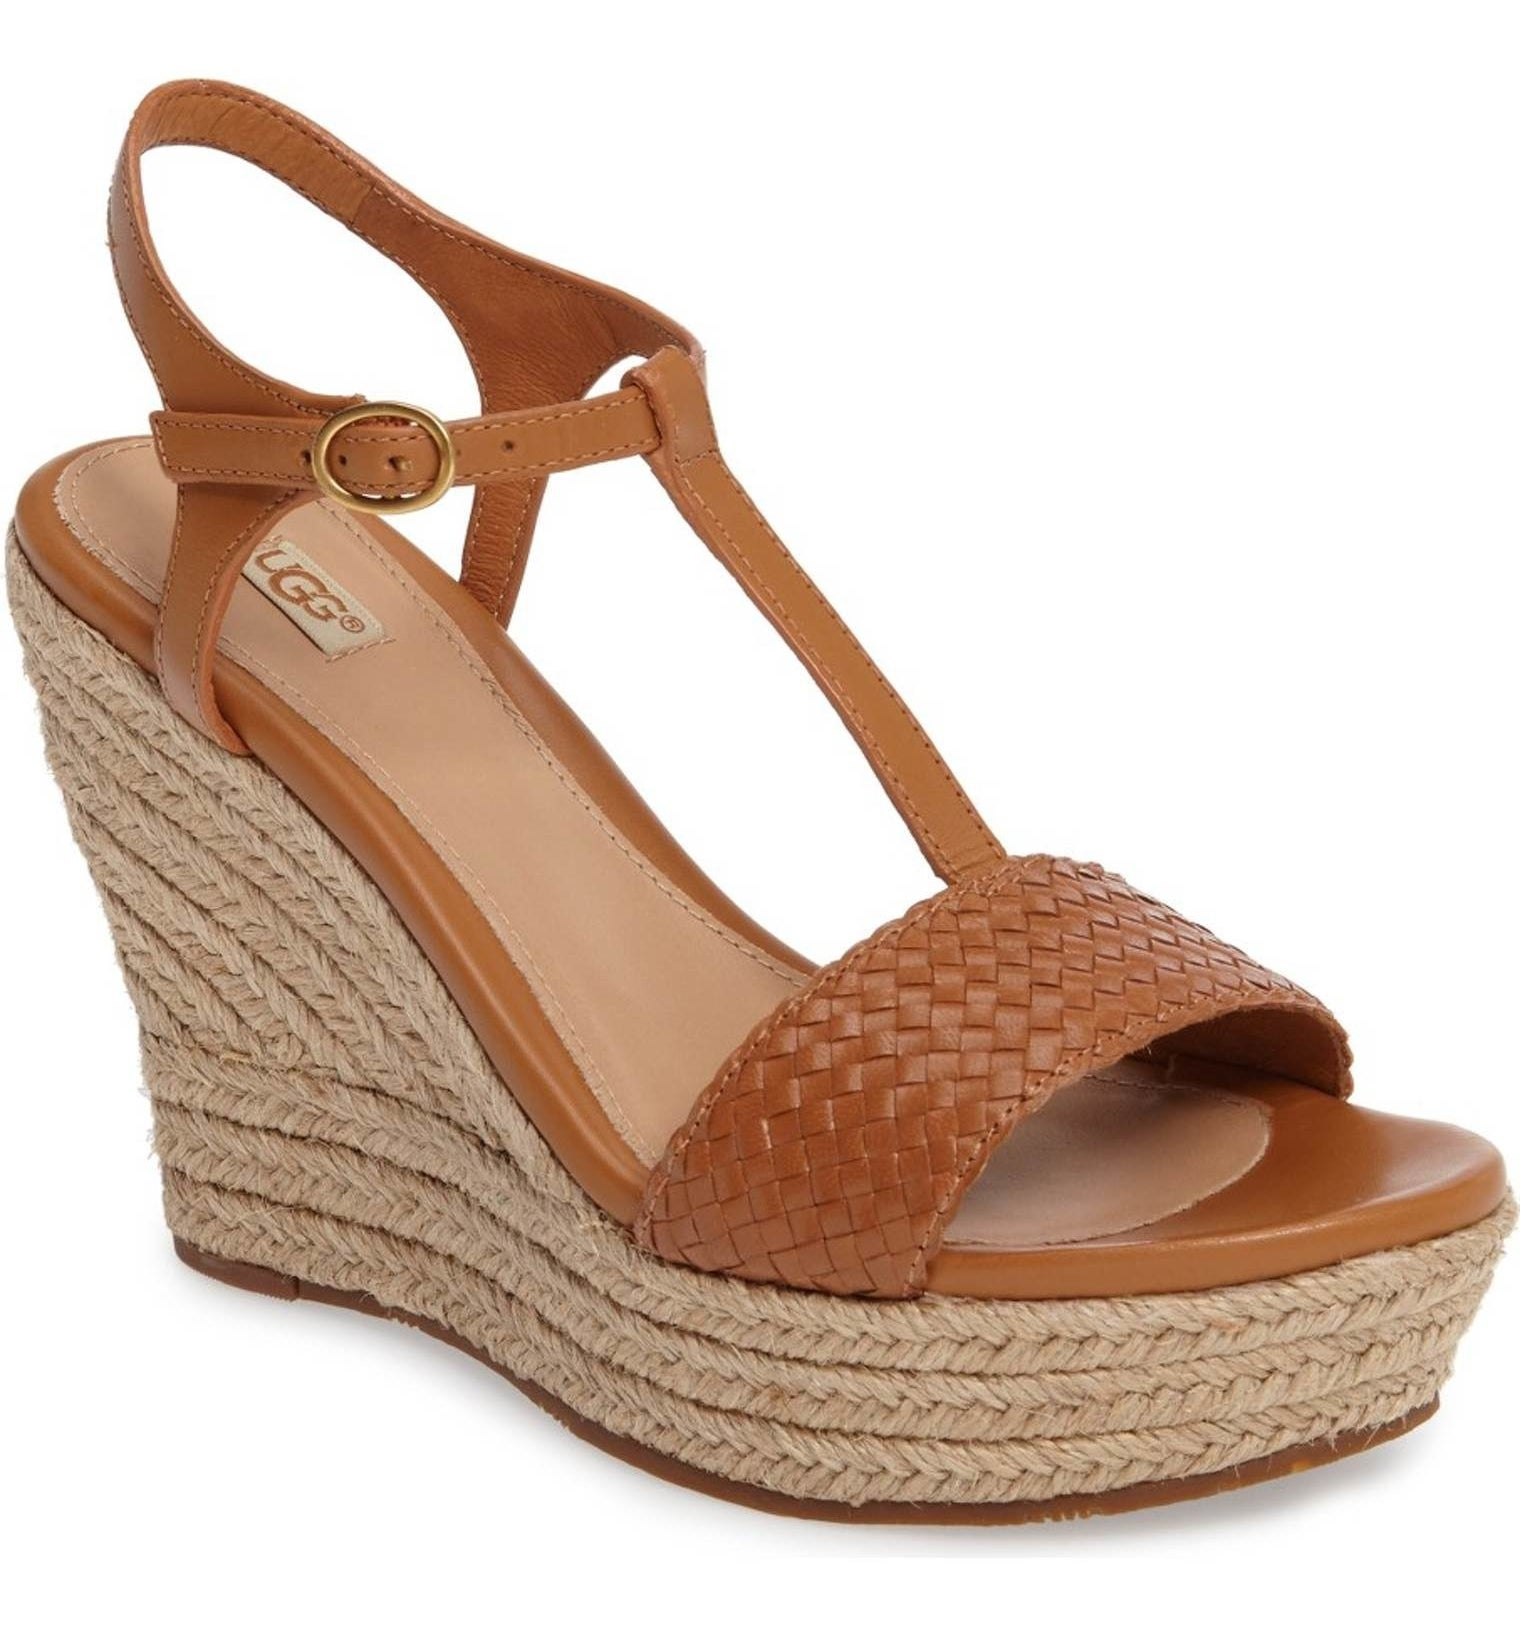 Price: $89.97 (originally $140; available in sizes 7.5-12).